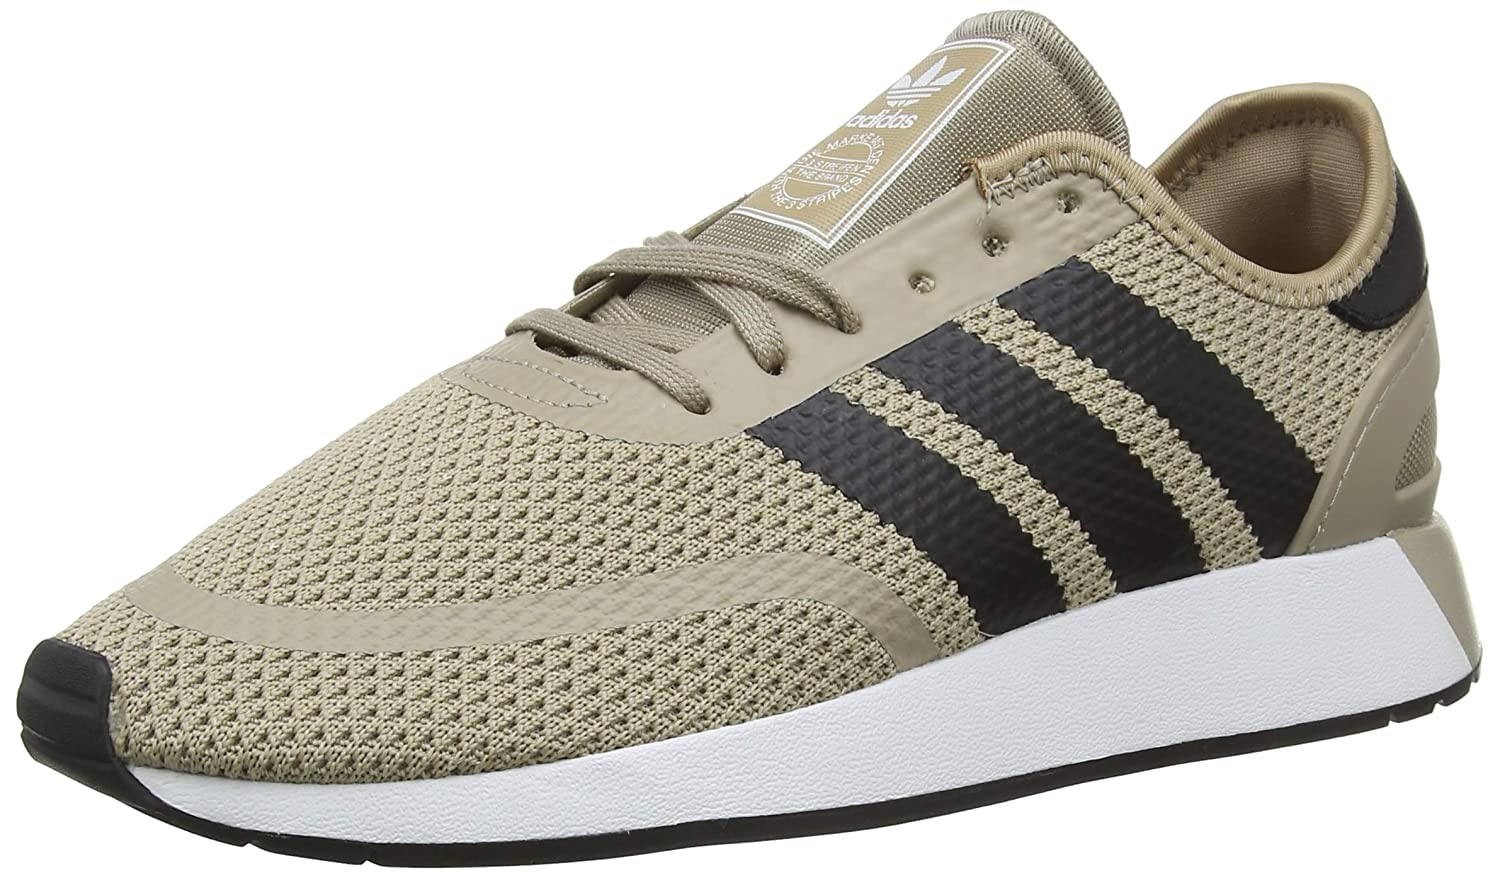 Amazon.com | Adidas N-5923 Mens Sneakers Khaki | Fashion ...